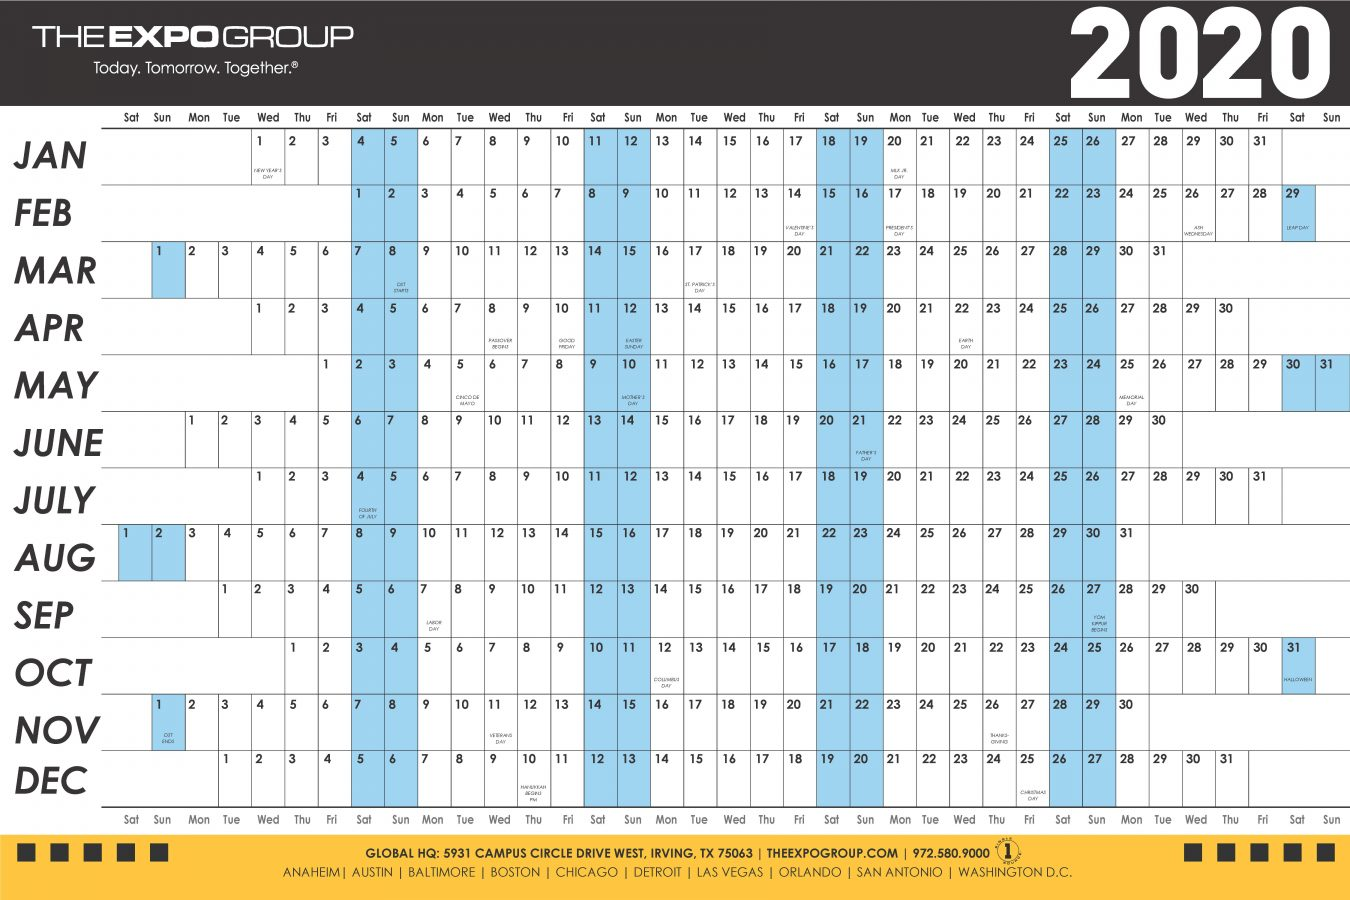 The Expo Group Calendar for 2020